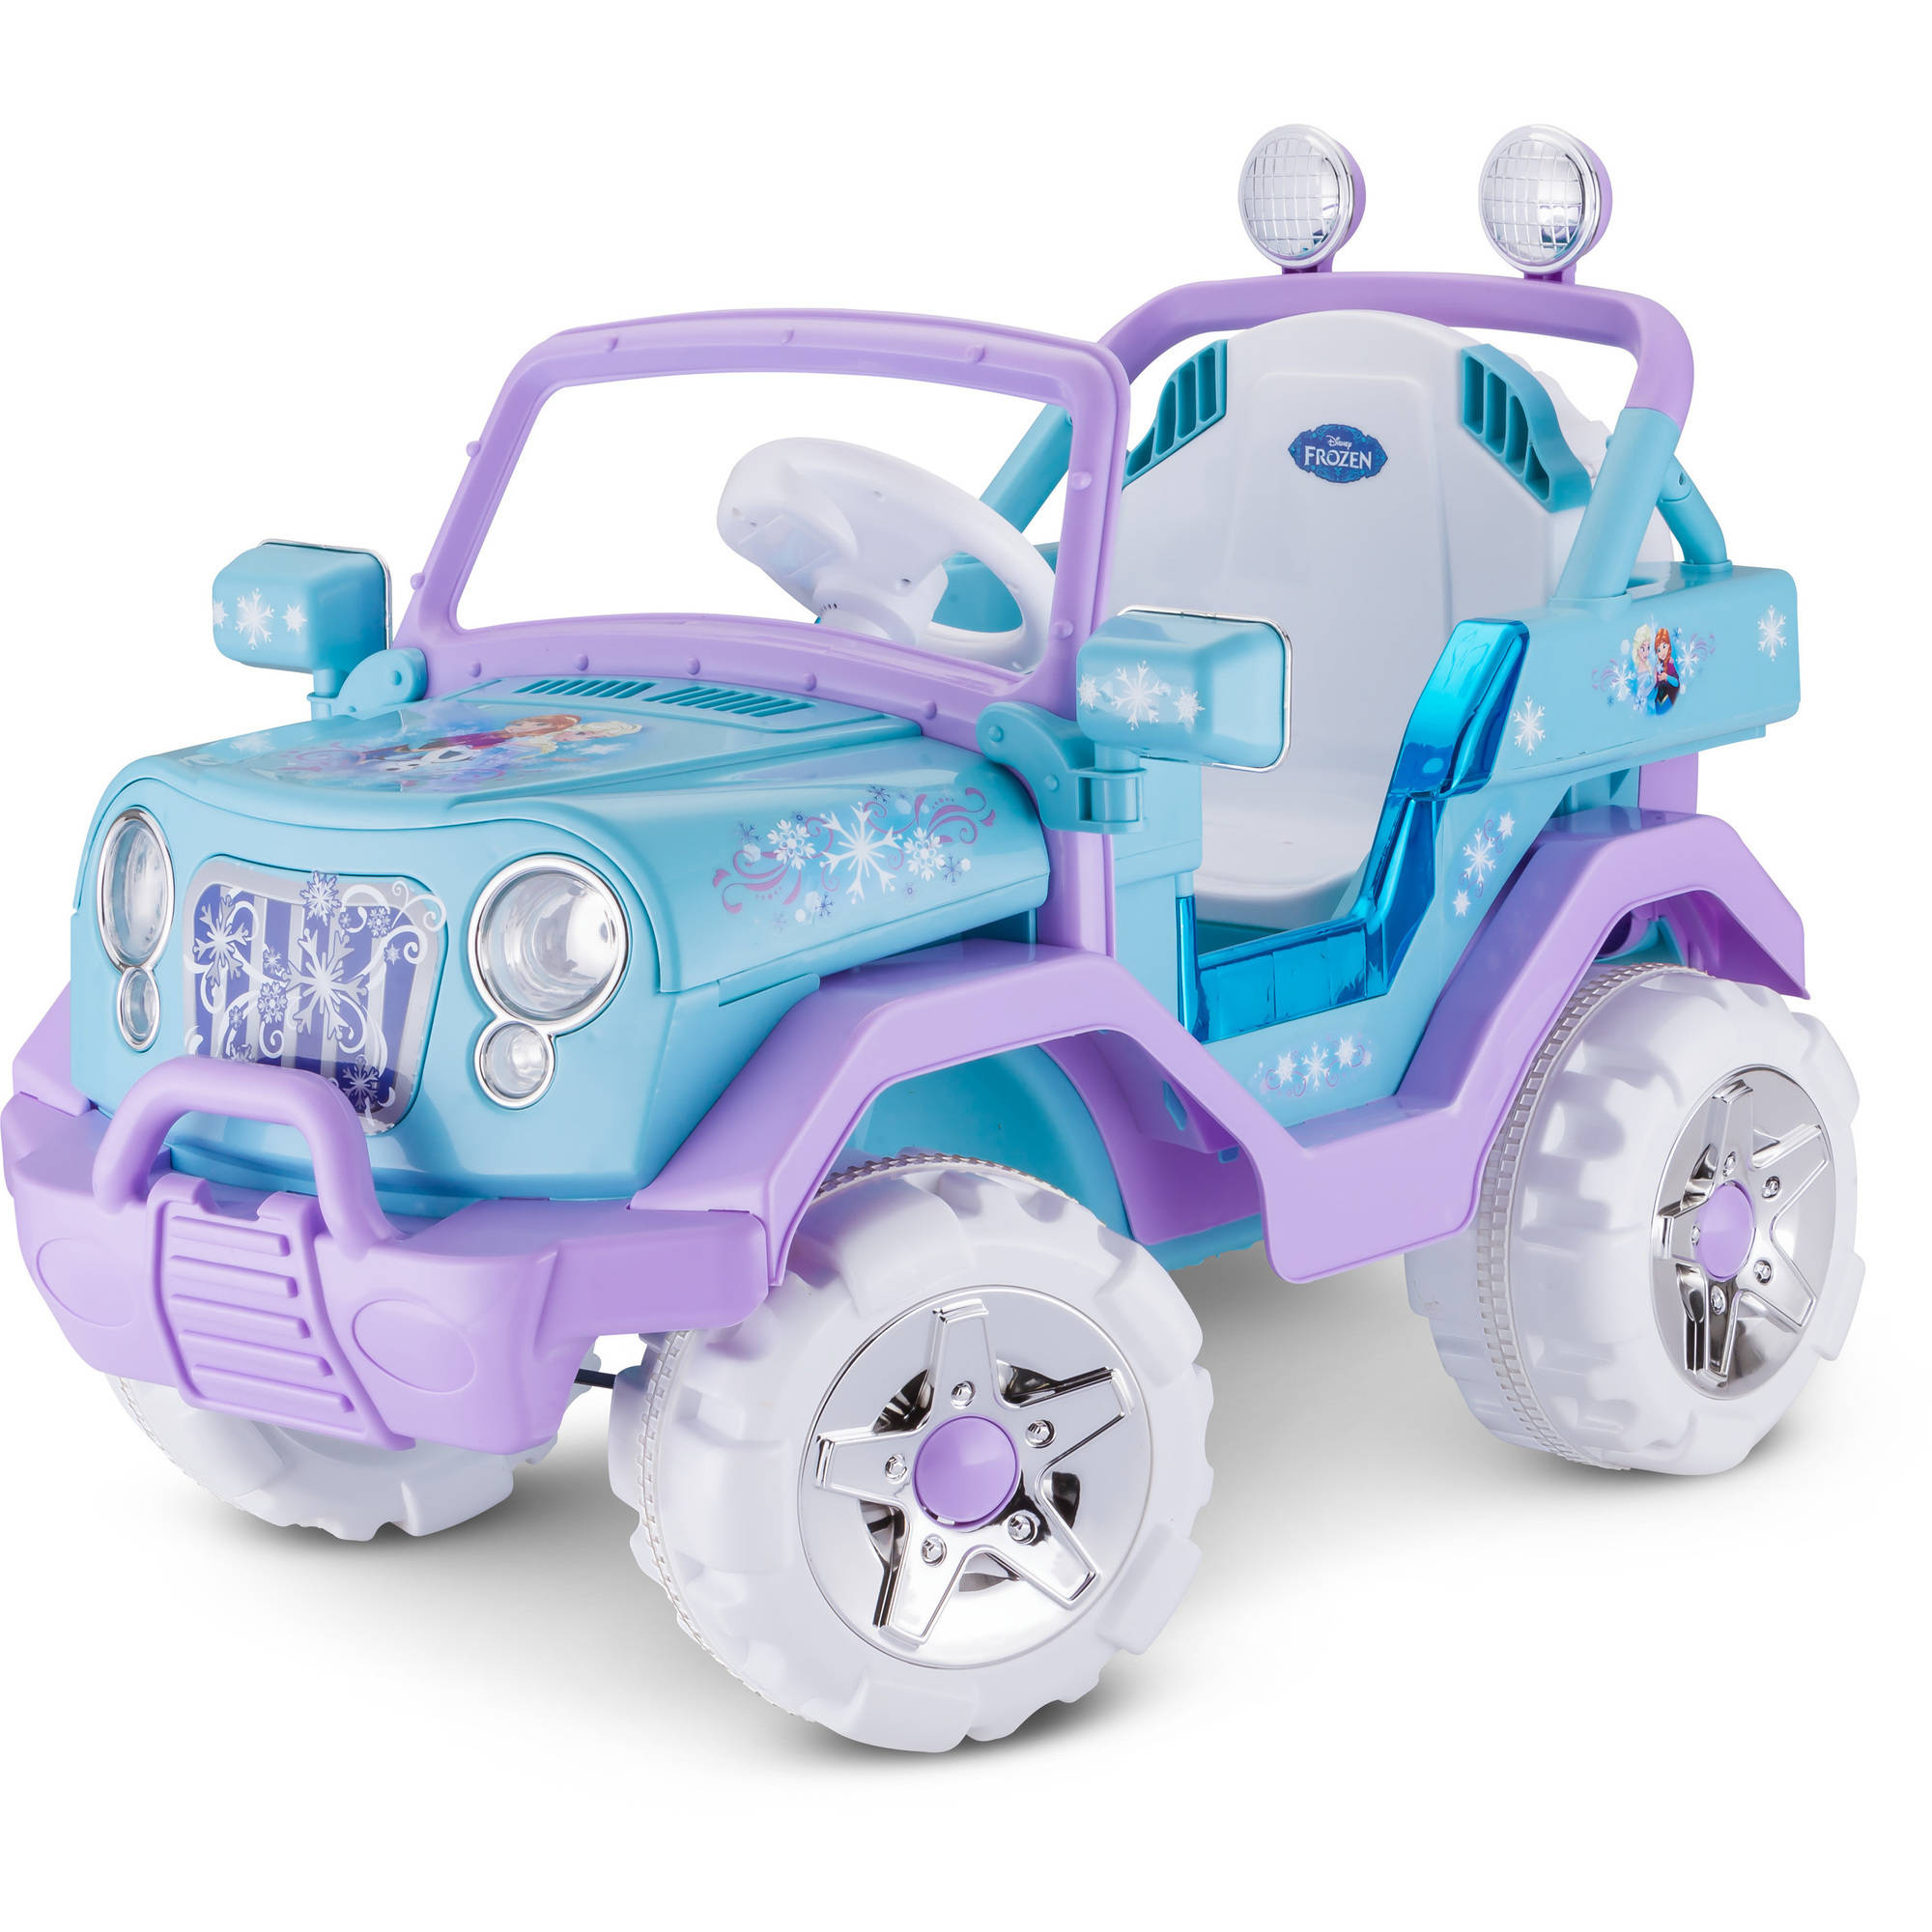 6V Disney Frozen 4x4, Blue/Purple